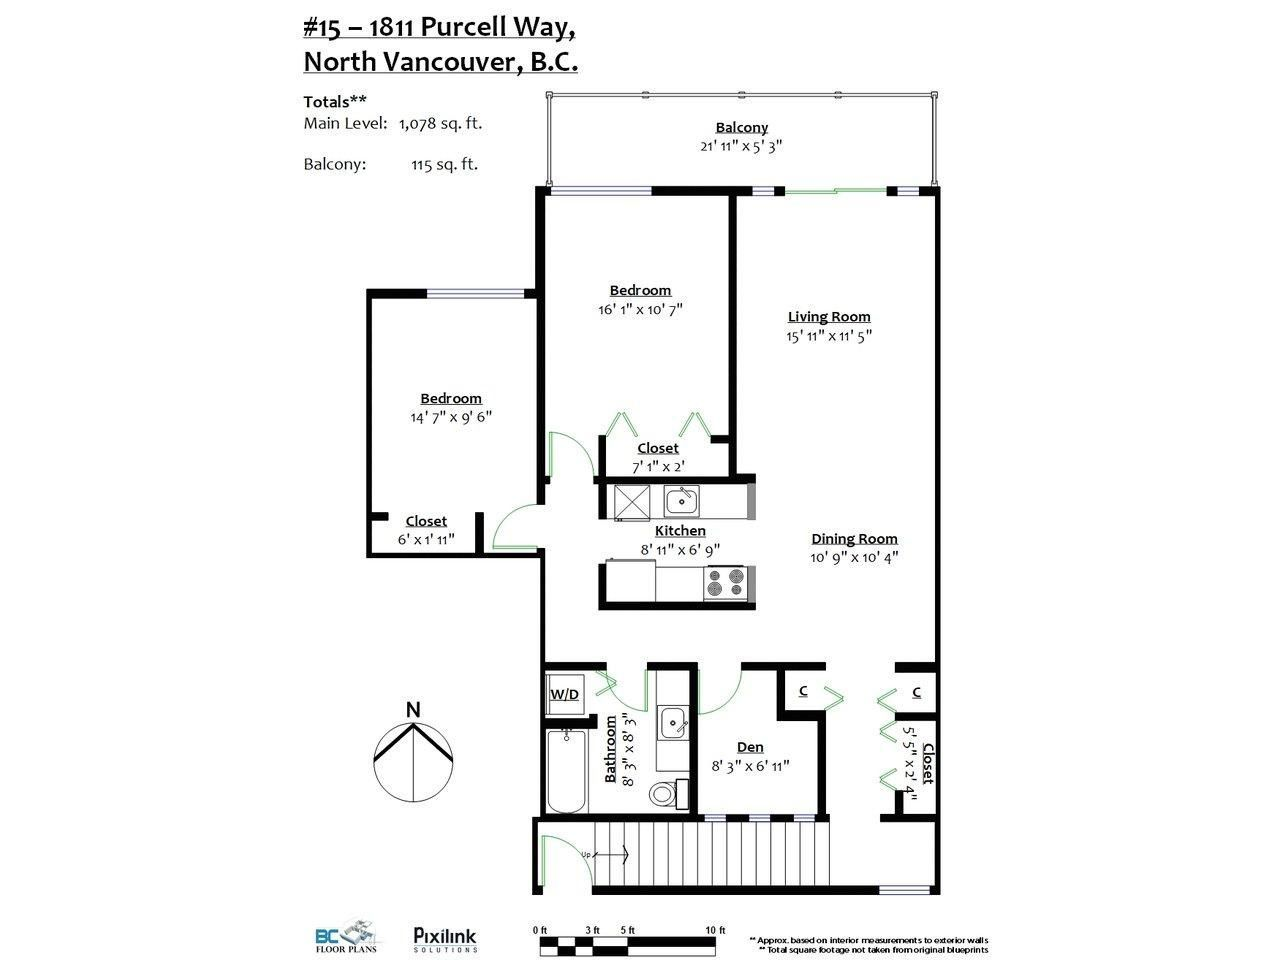 """Photo 13: Photos: 15 1811 PURCELL Way in North Vancouver: Lynnmour Condo for sale in """"LYNNMOUR SOUTH"""" : MLS®# R2276321"""